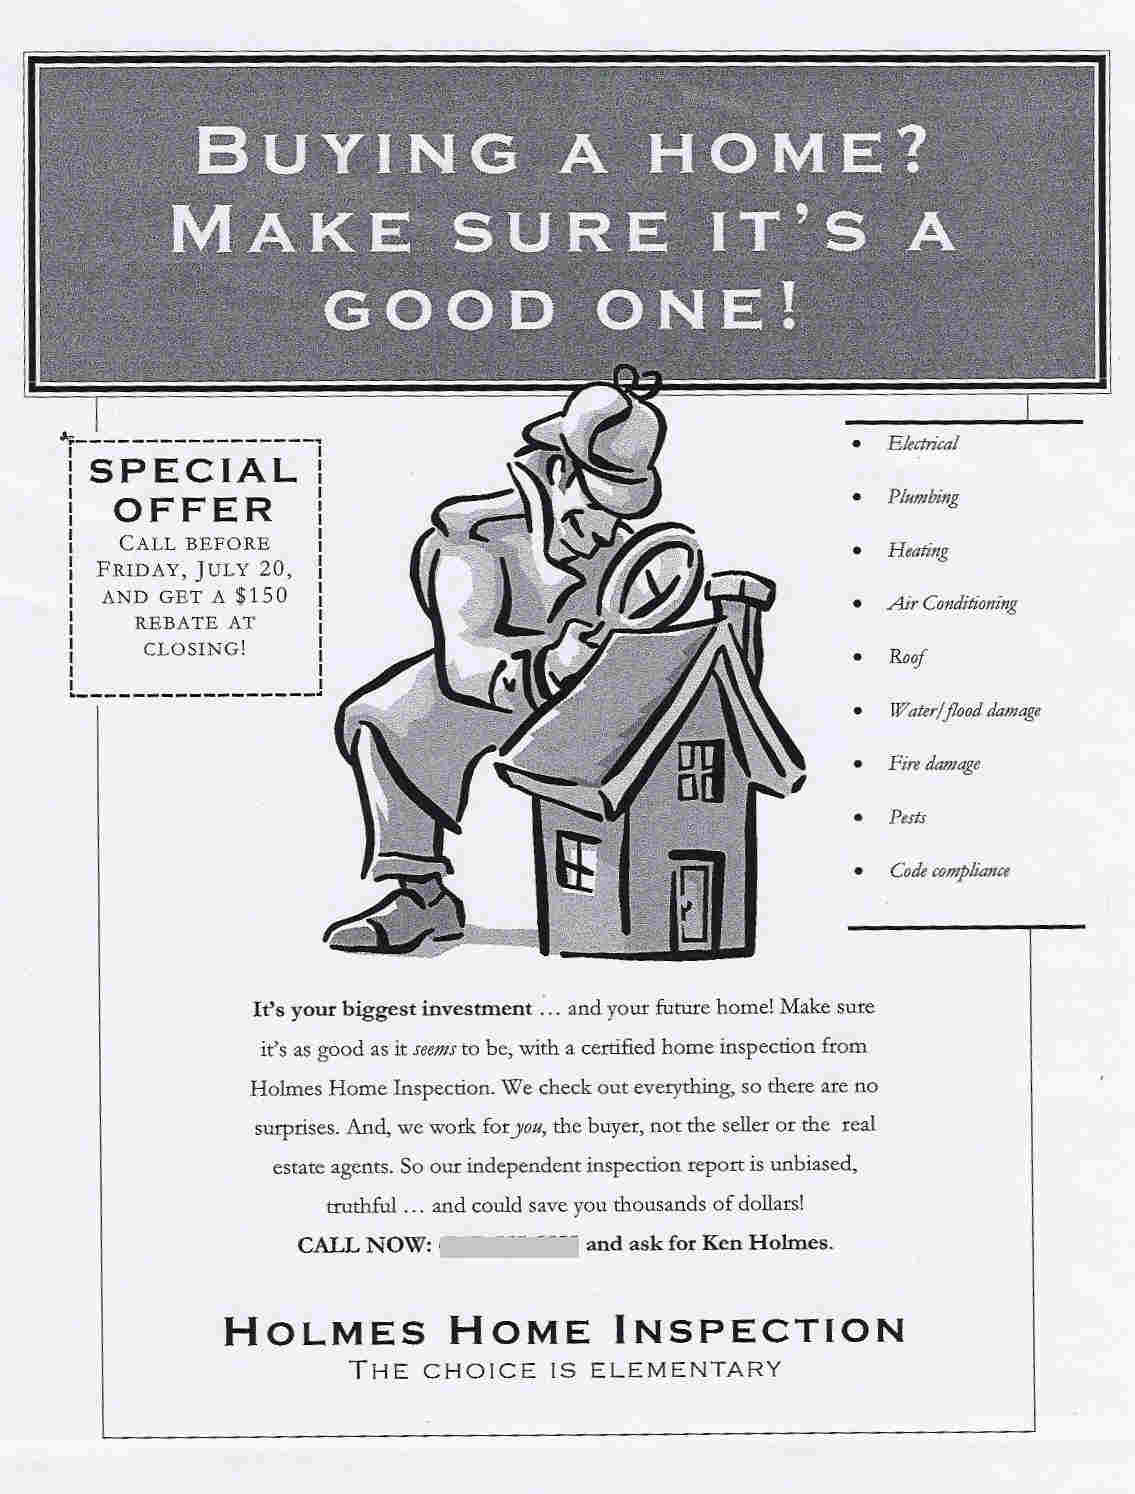 Flyer for a home inspection company